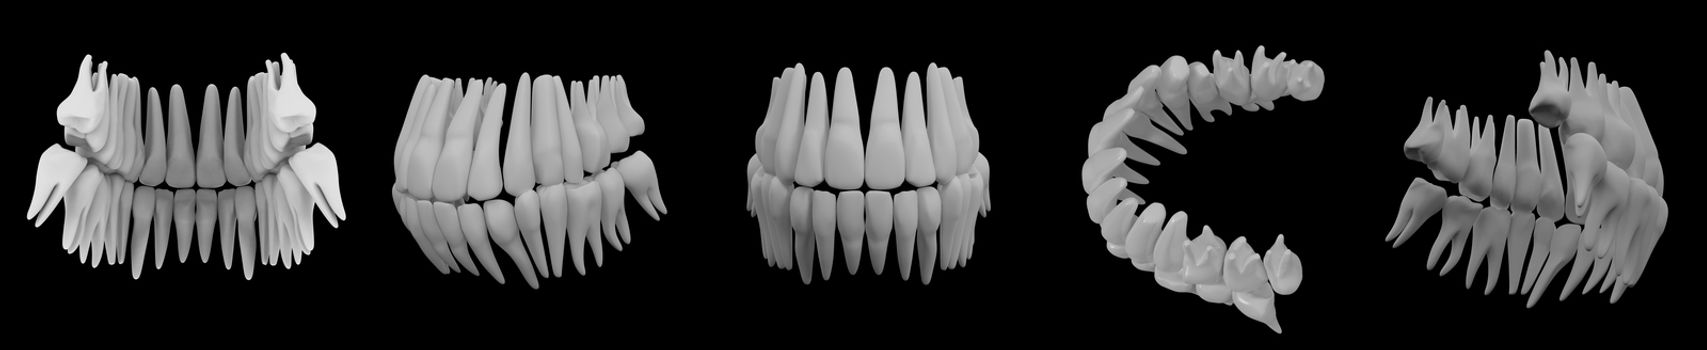 3d image of white teeth isolated on black